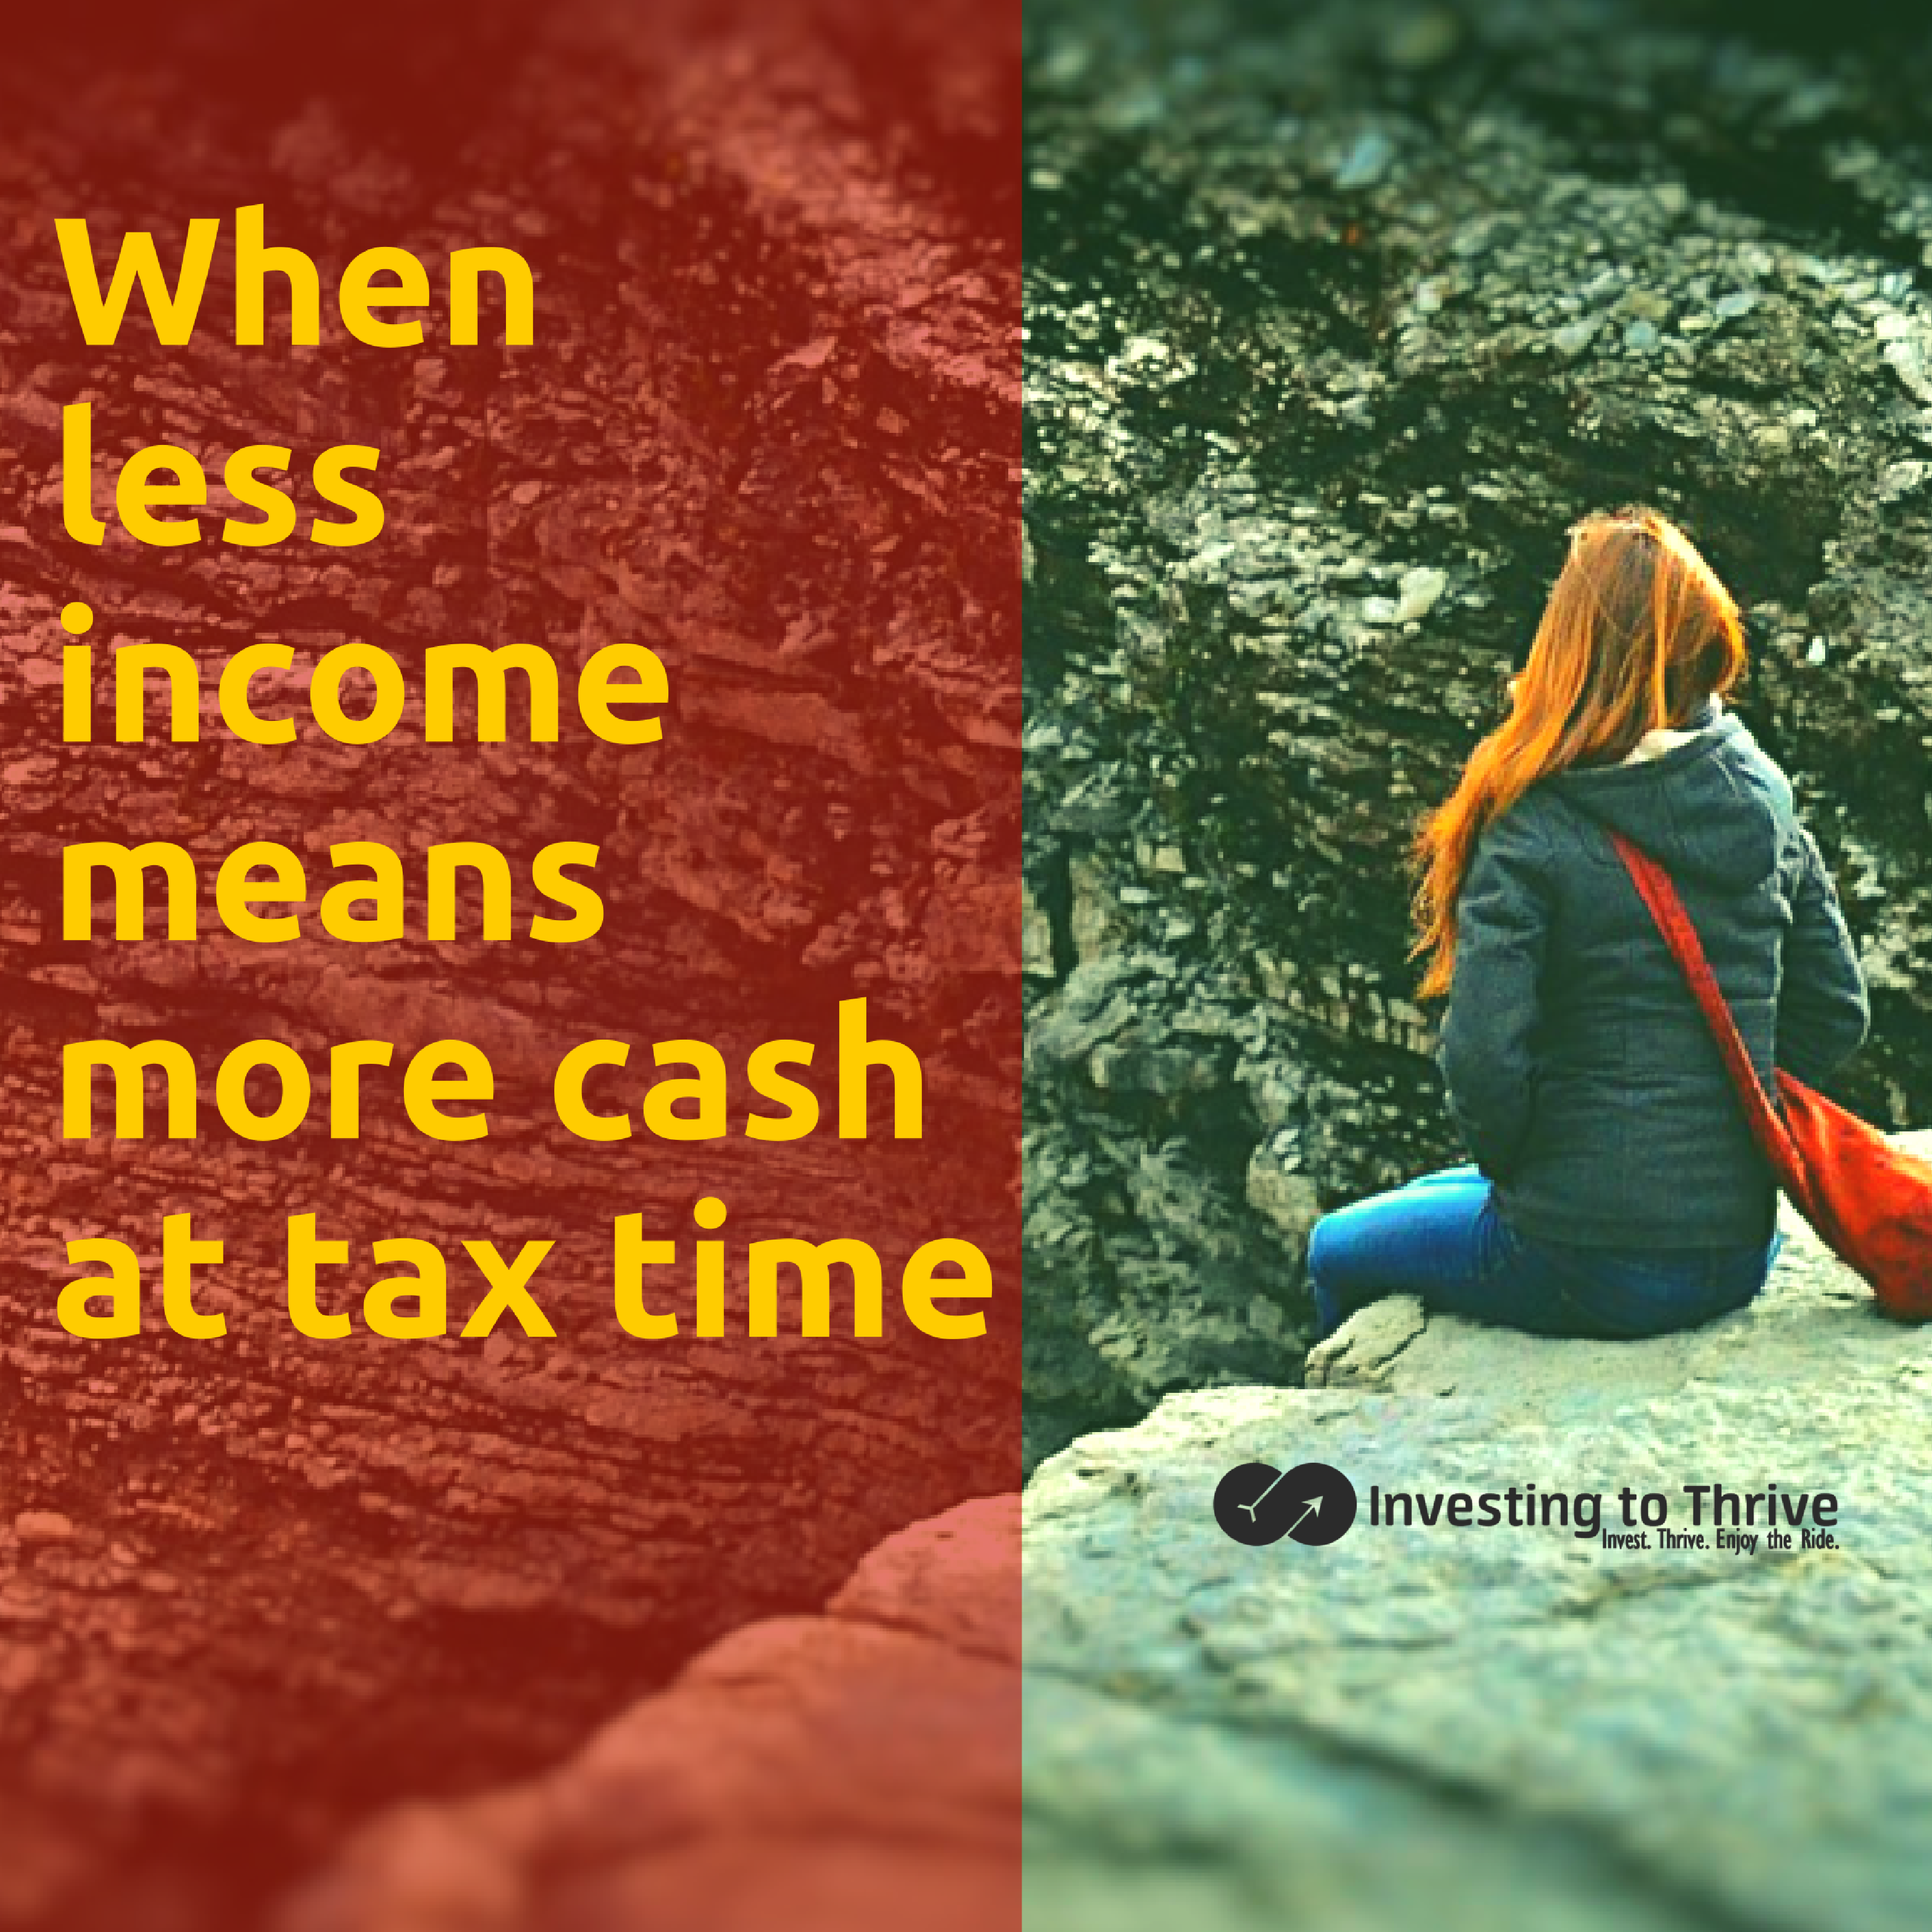 Managing my income can make me eligible for certain tax benefits, such as education tax credits. Here are IRS income limits for various tax breaks.